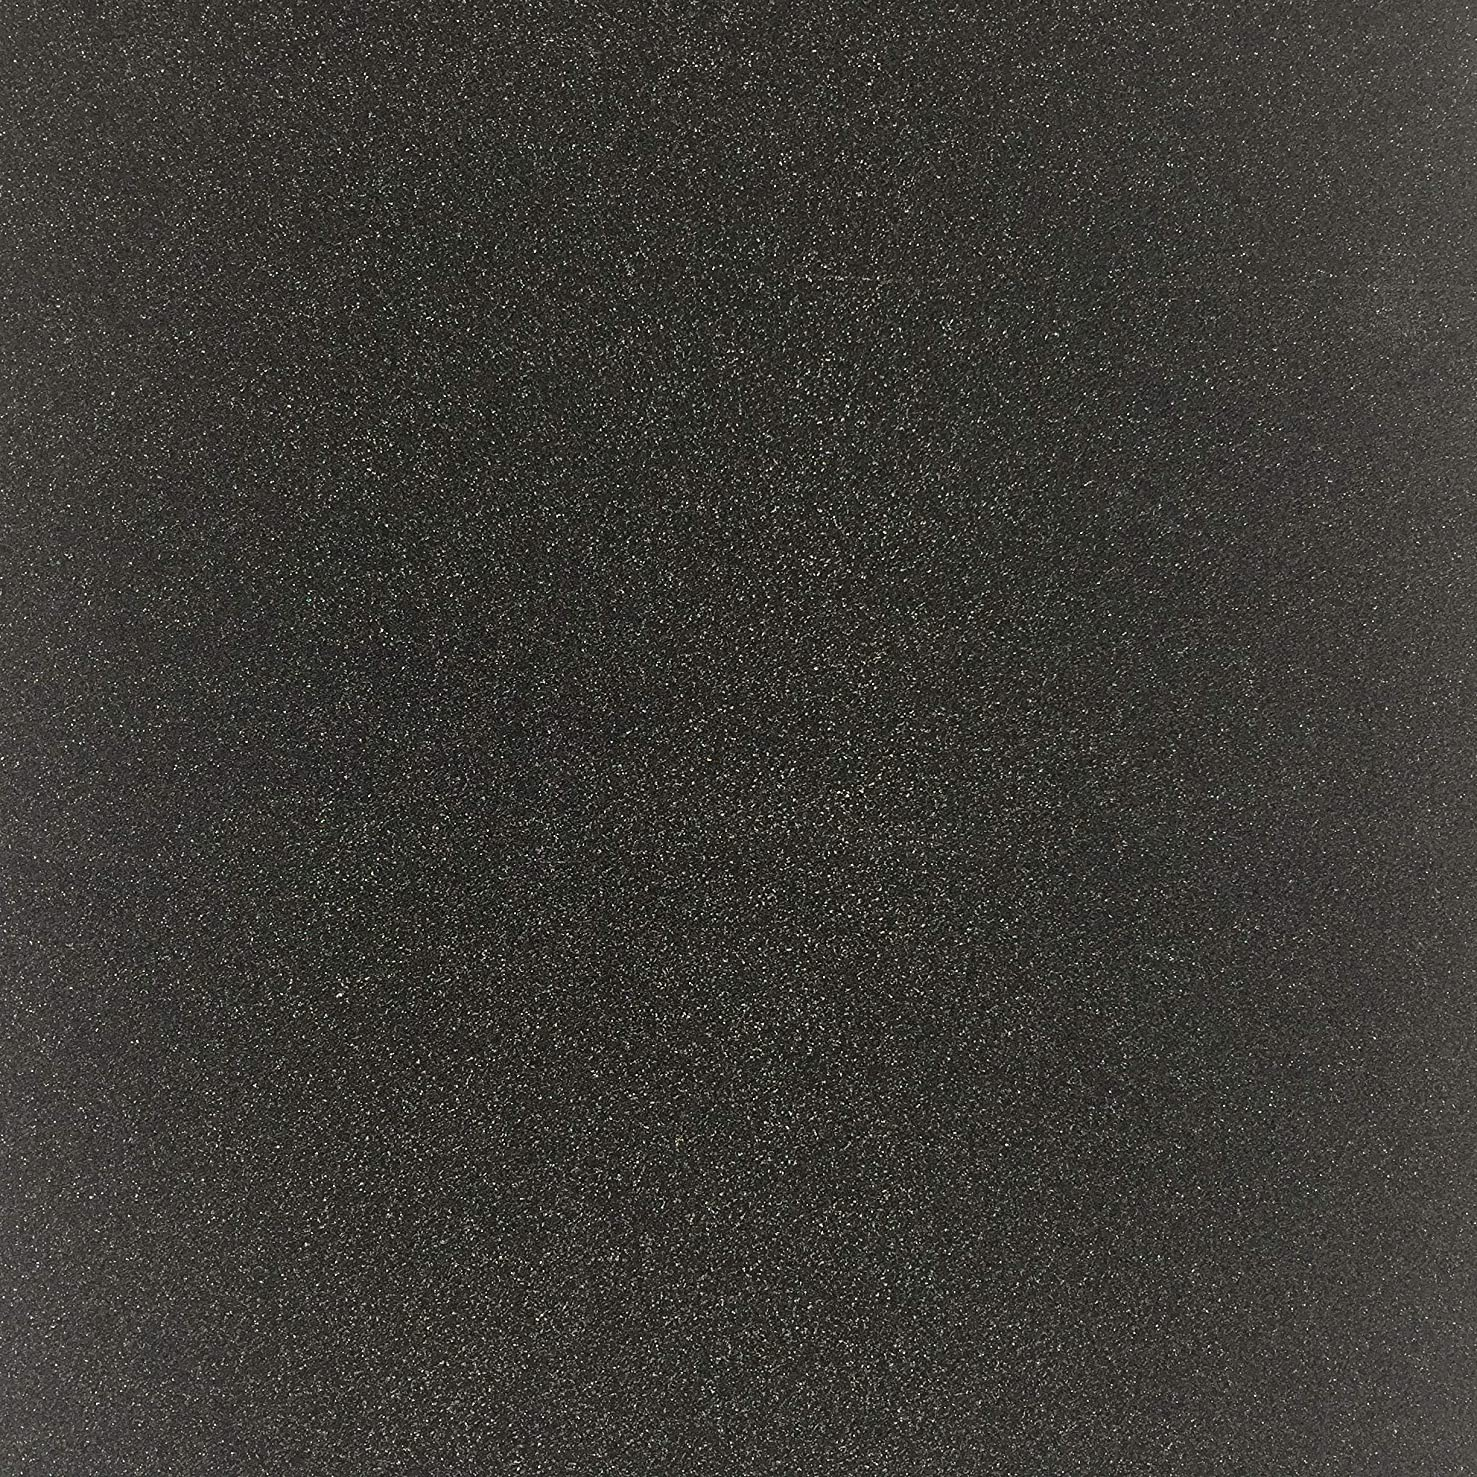 TooMeeCrafts 12-Inch by12-Inch Glitter Cardstock, Black Color,Pack of 15